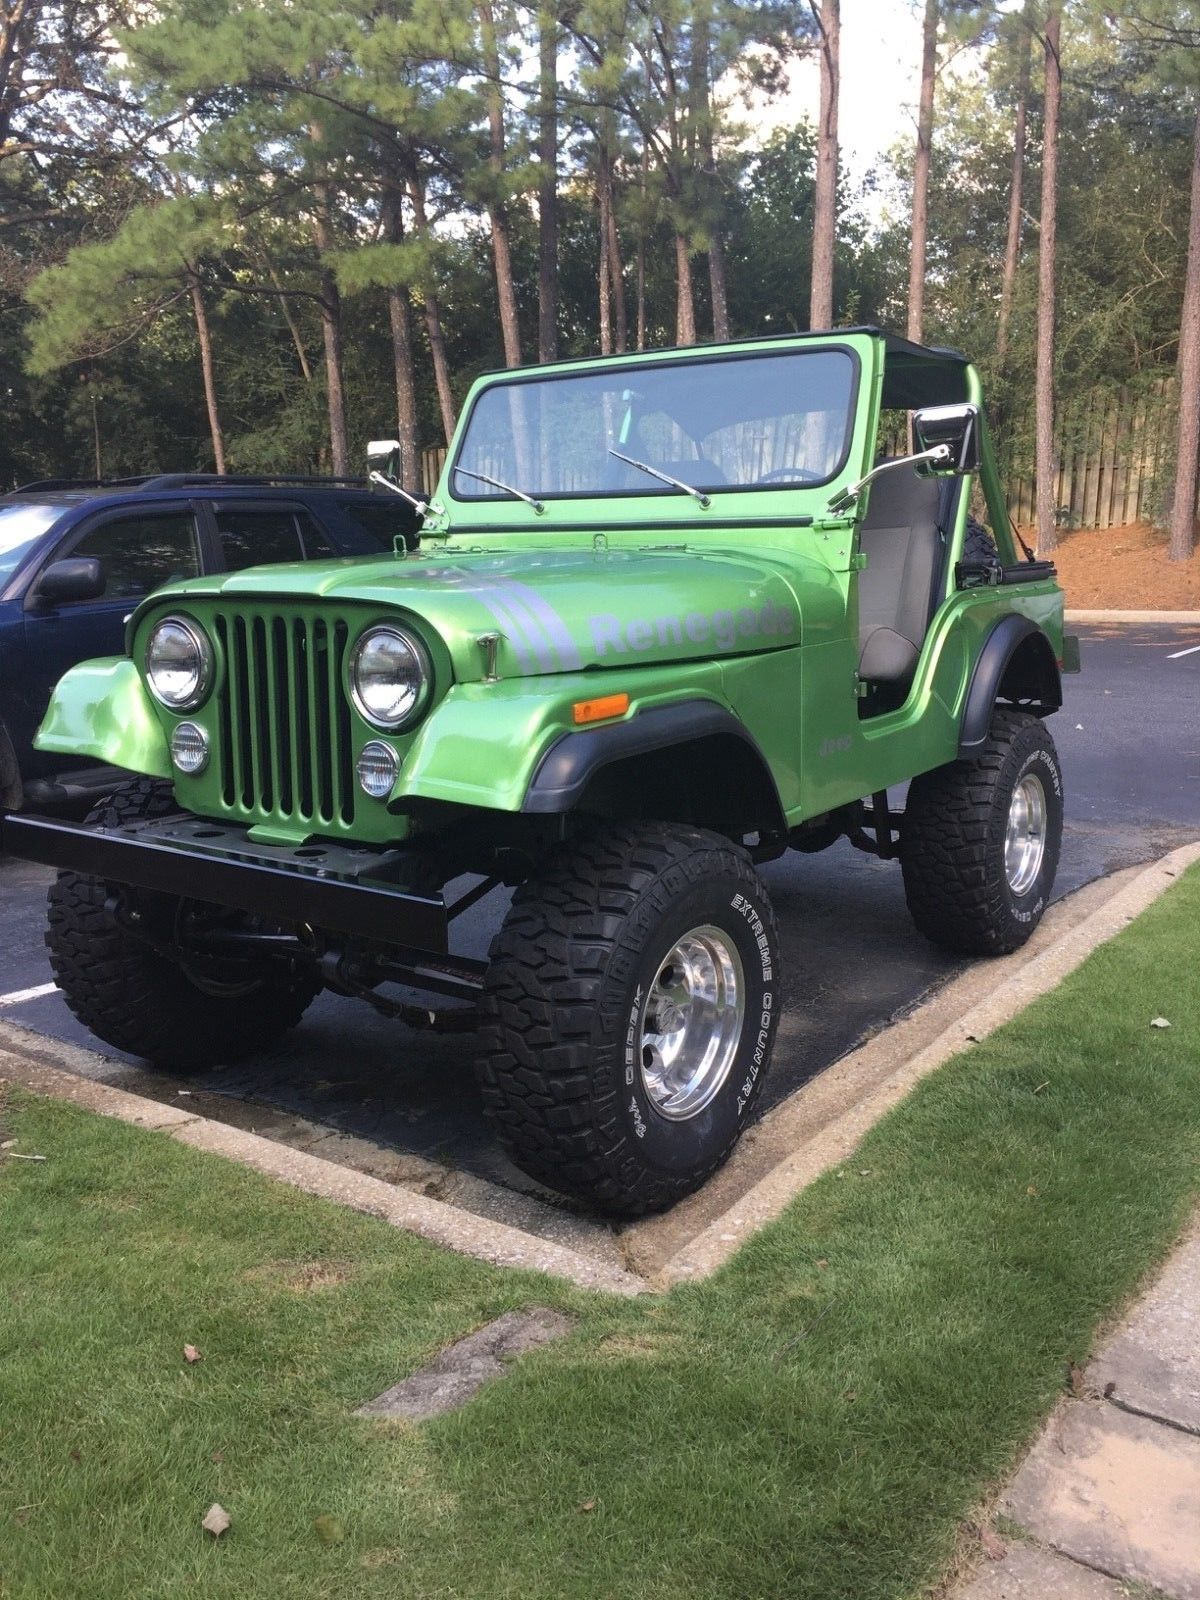 vicari for of house sale image auctions cj new at a auction renegade jeep orleans